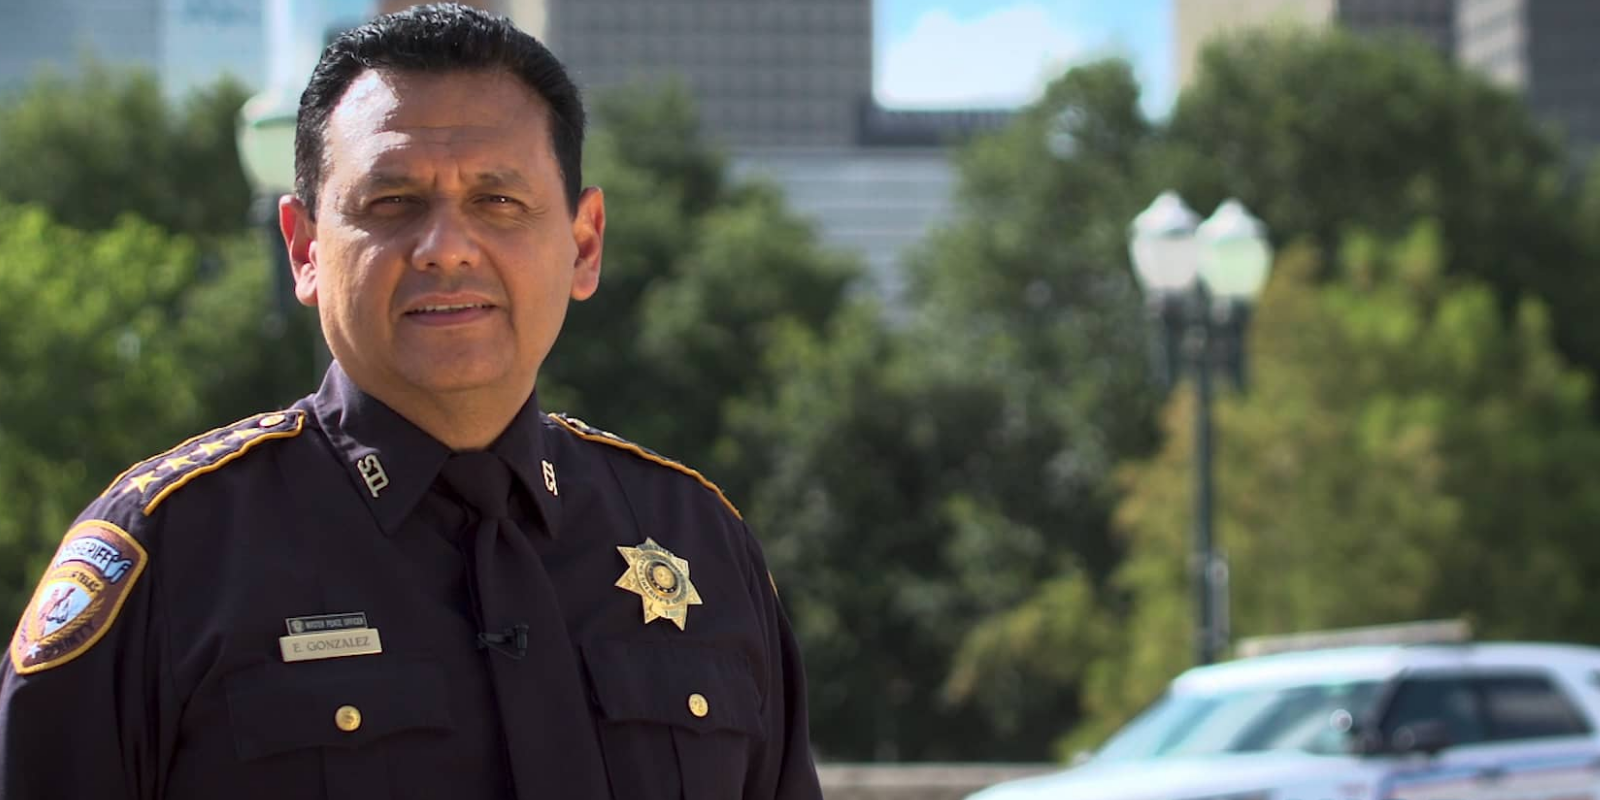 Biden's nominee for ICE director is sheriff who made Houston a 'sanctuary city'